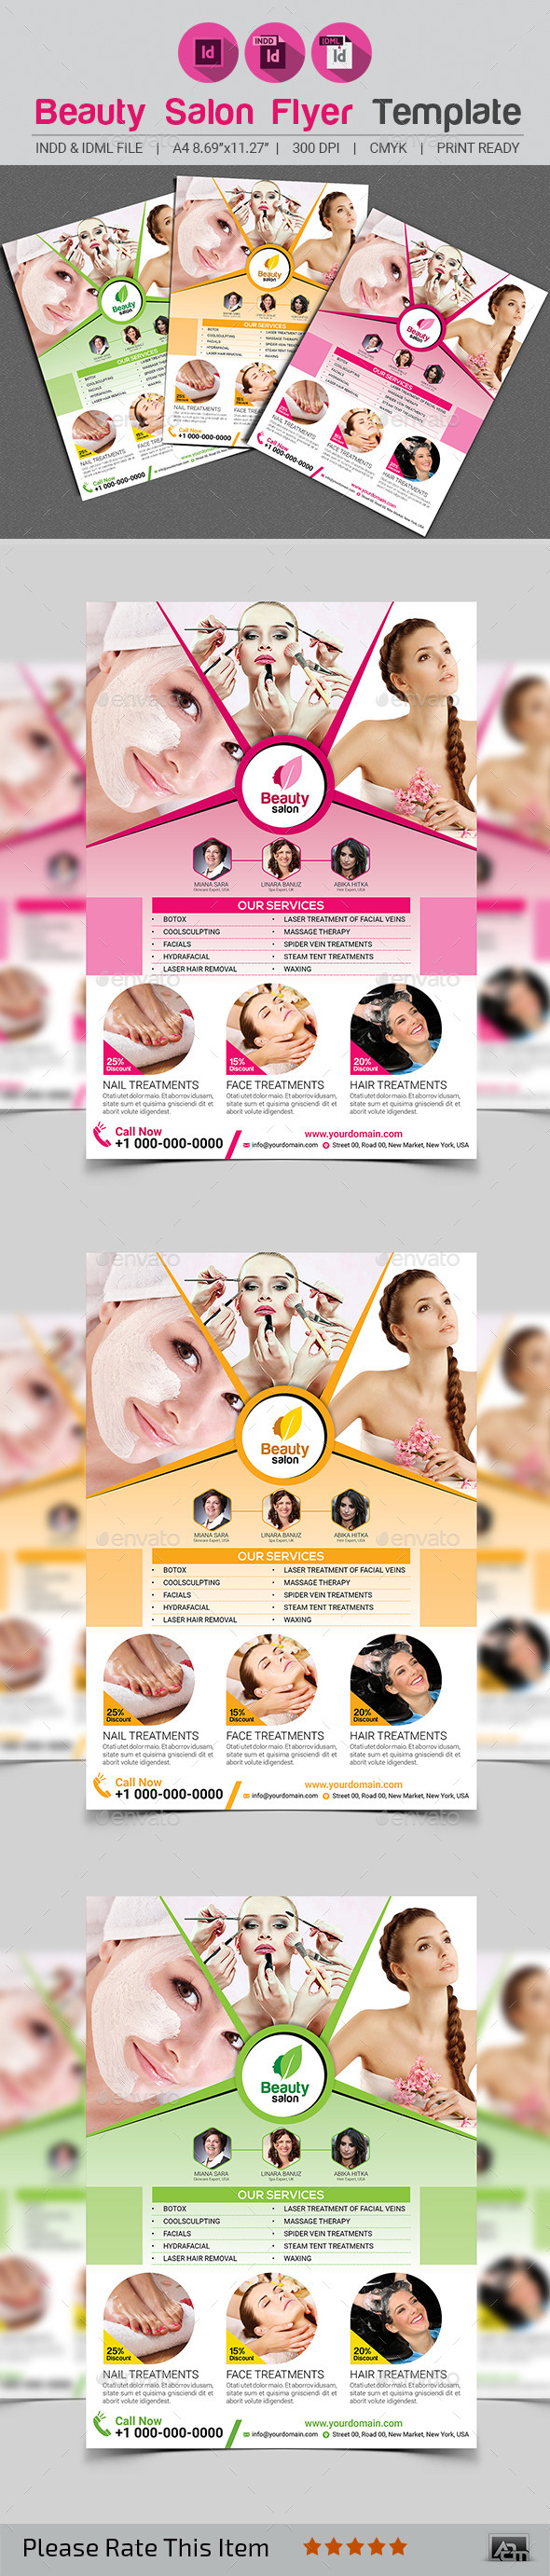 GraphicRiver Beauty Salon Flyer Template 11895737